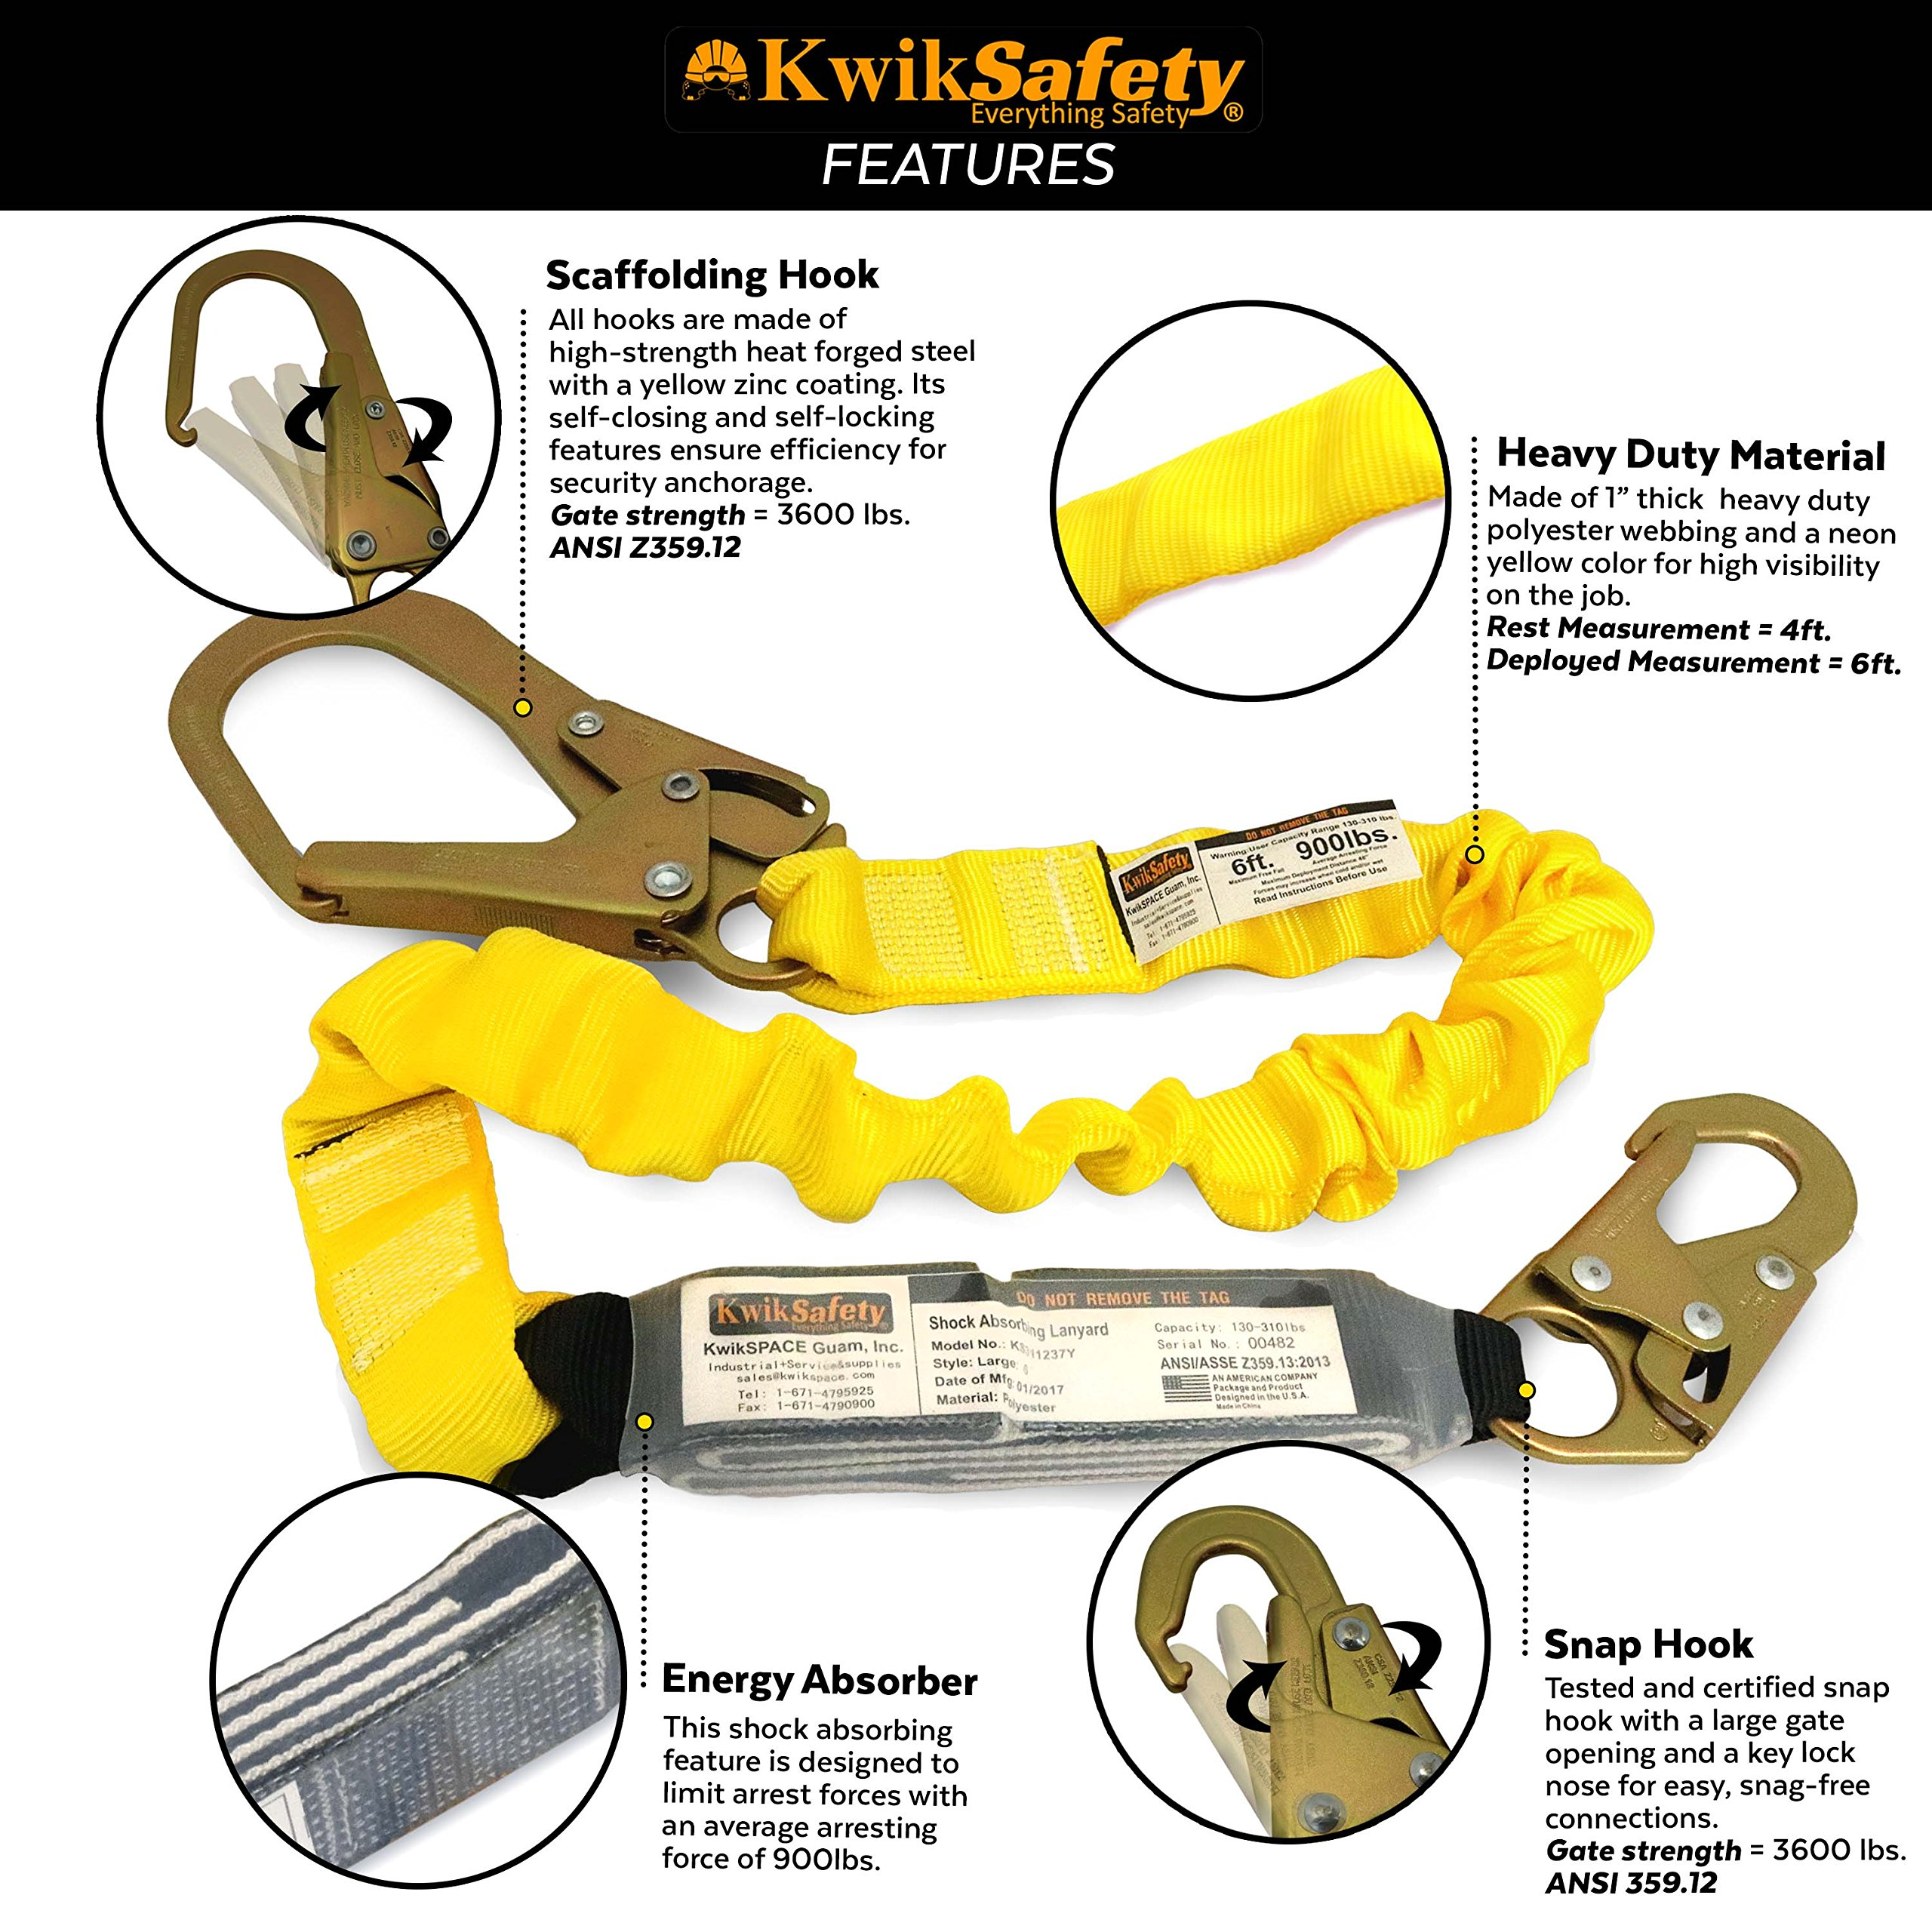 KwikSafety (Charlotte, NC) BOA 4 PACK (External Shock Absorber) Single Leg 6ft Safety Lanyard OSHA ANSI Fall Protection Restraint Equipment Snap Rebar Hook Connectors Construction Arborist Roofing by KwikSafety (Image #3)